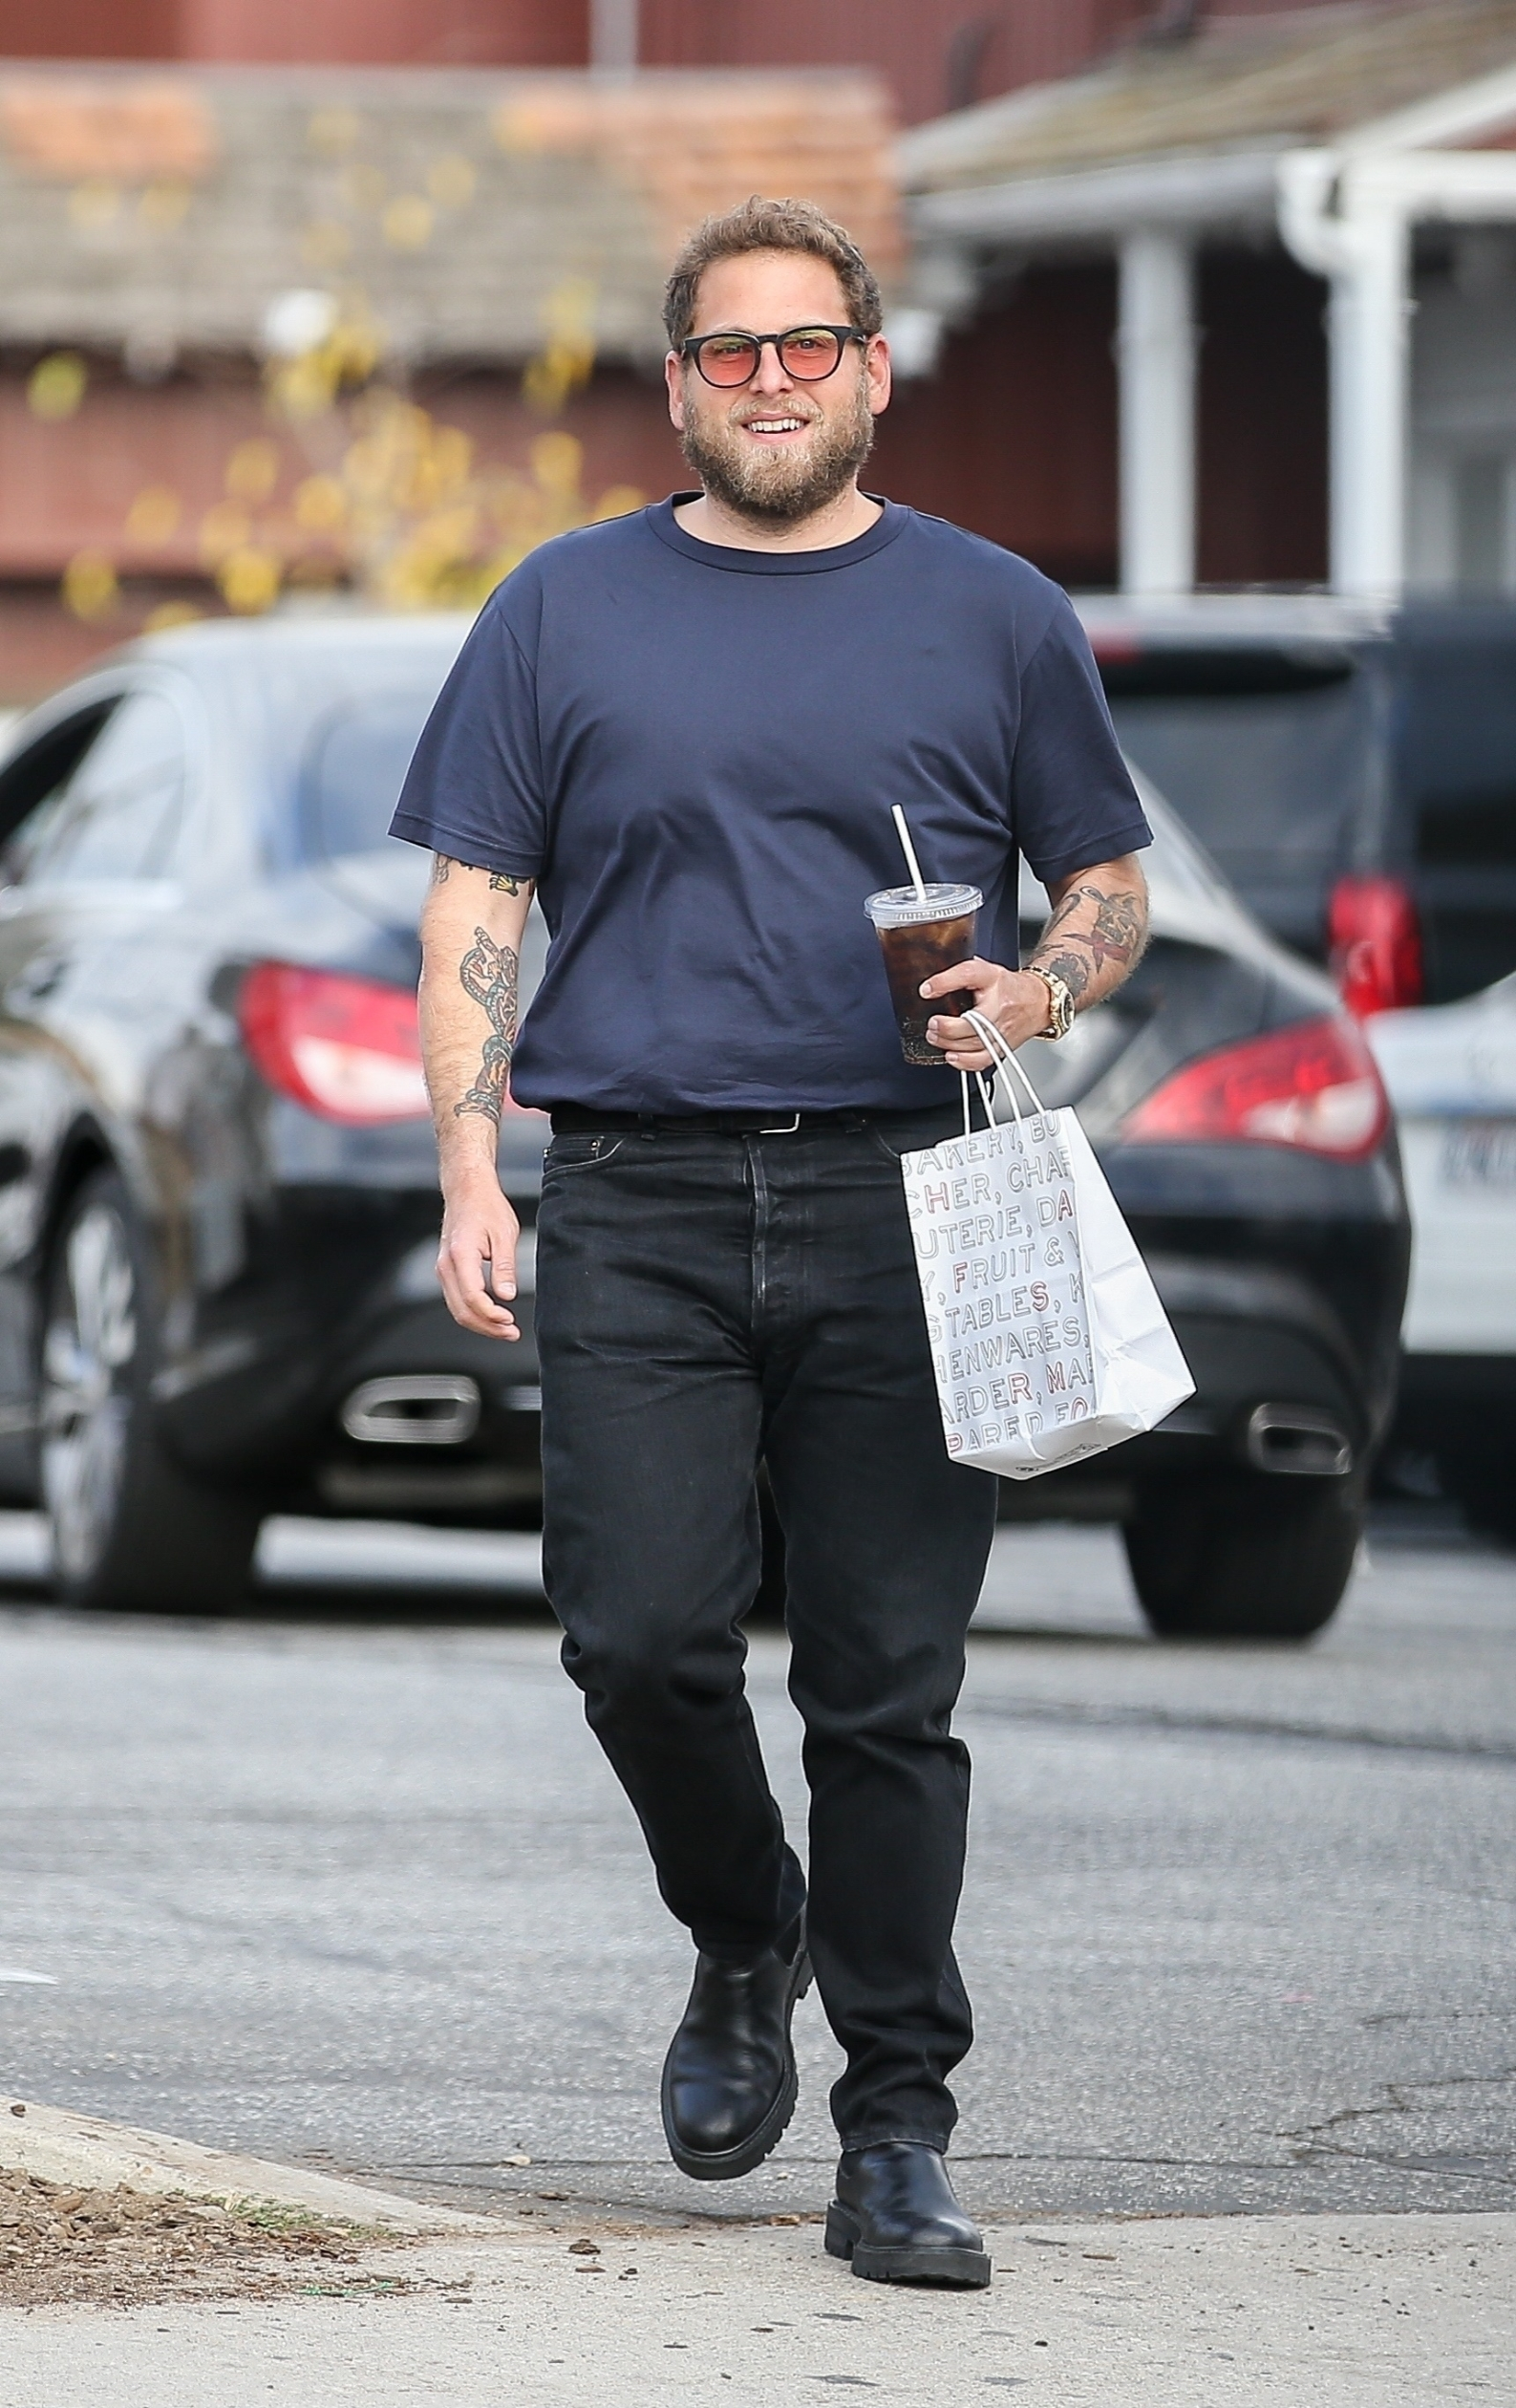 Brentwood, CA  - *EXCLUSIVE* - Actor/director, Jonah Hill, is out at the Brentwood Country Mart fueling up with coffee and food during a cloudy outing in Brentwood.  BACKGRID USA 19 NOVEMBER 2019, Image: 483789048, License: Rights-managed, Restrictions: , Model Release: no, Credit line: Poersch / BACKGRID / Backgrid USA / Profimedia